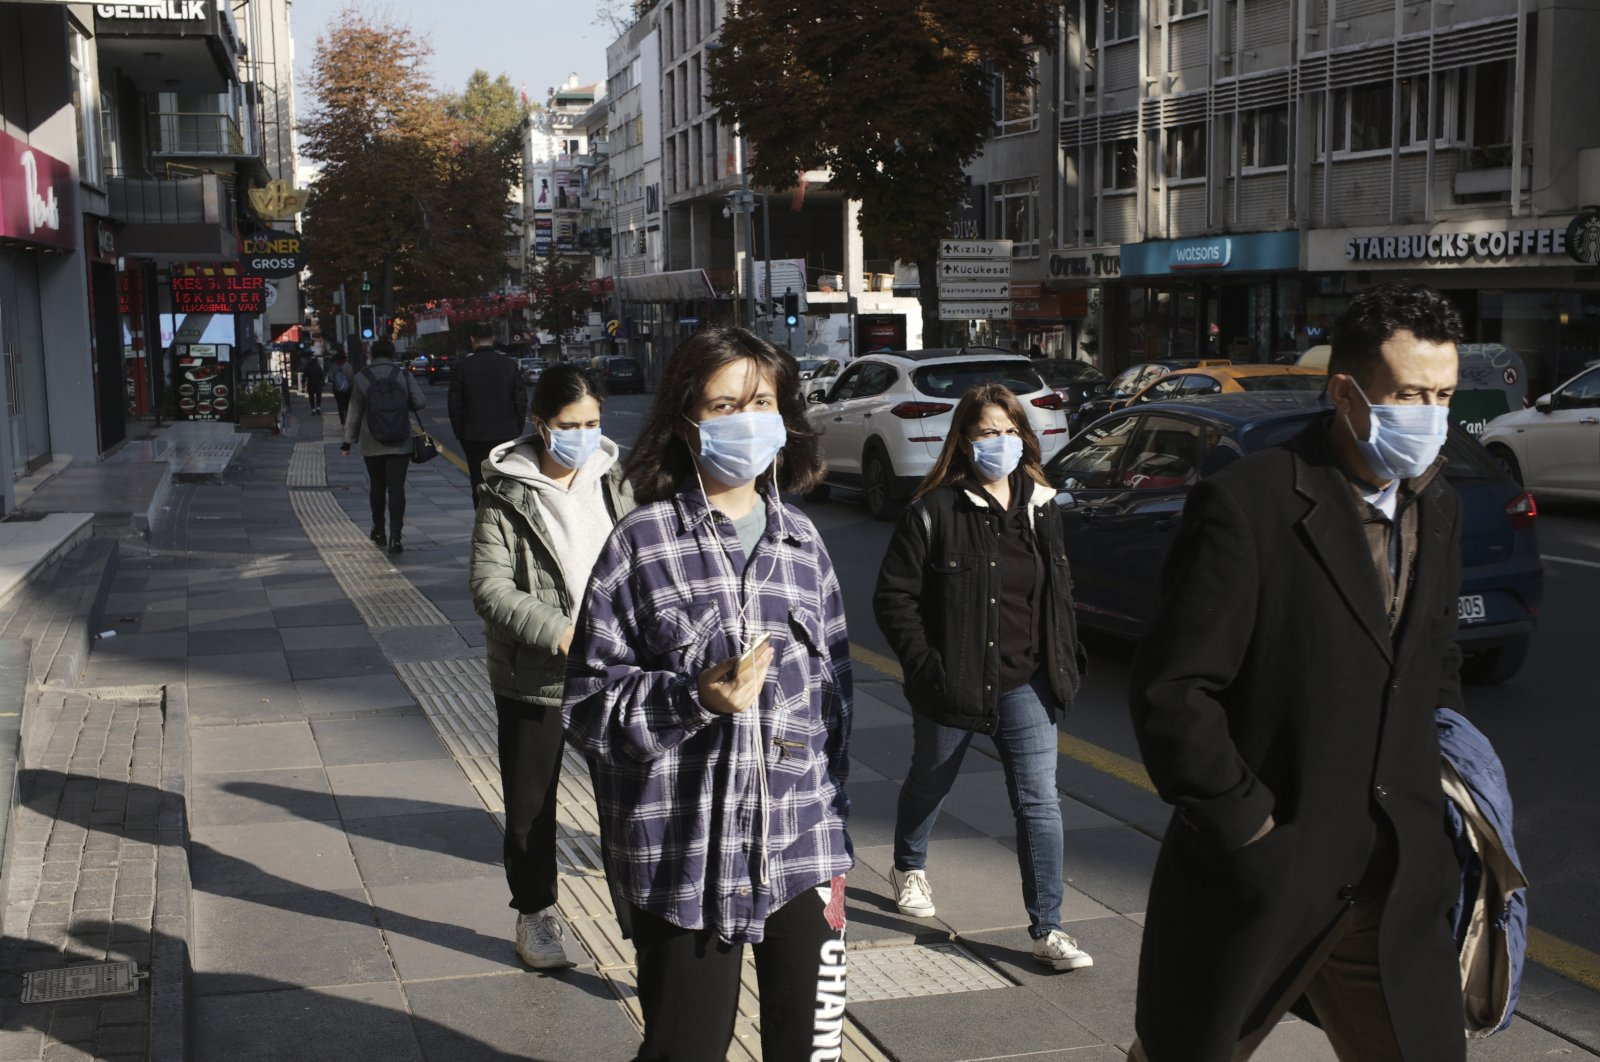 People wearing masks to help protect against the spread of coronavirus, walk, in Ankara, Turkey, Monday, Nov. 15, 2020. (AP Photo)